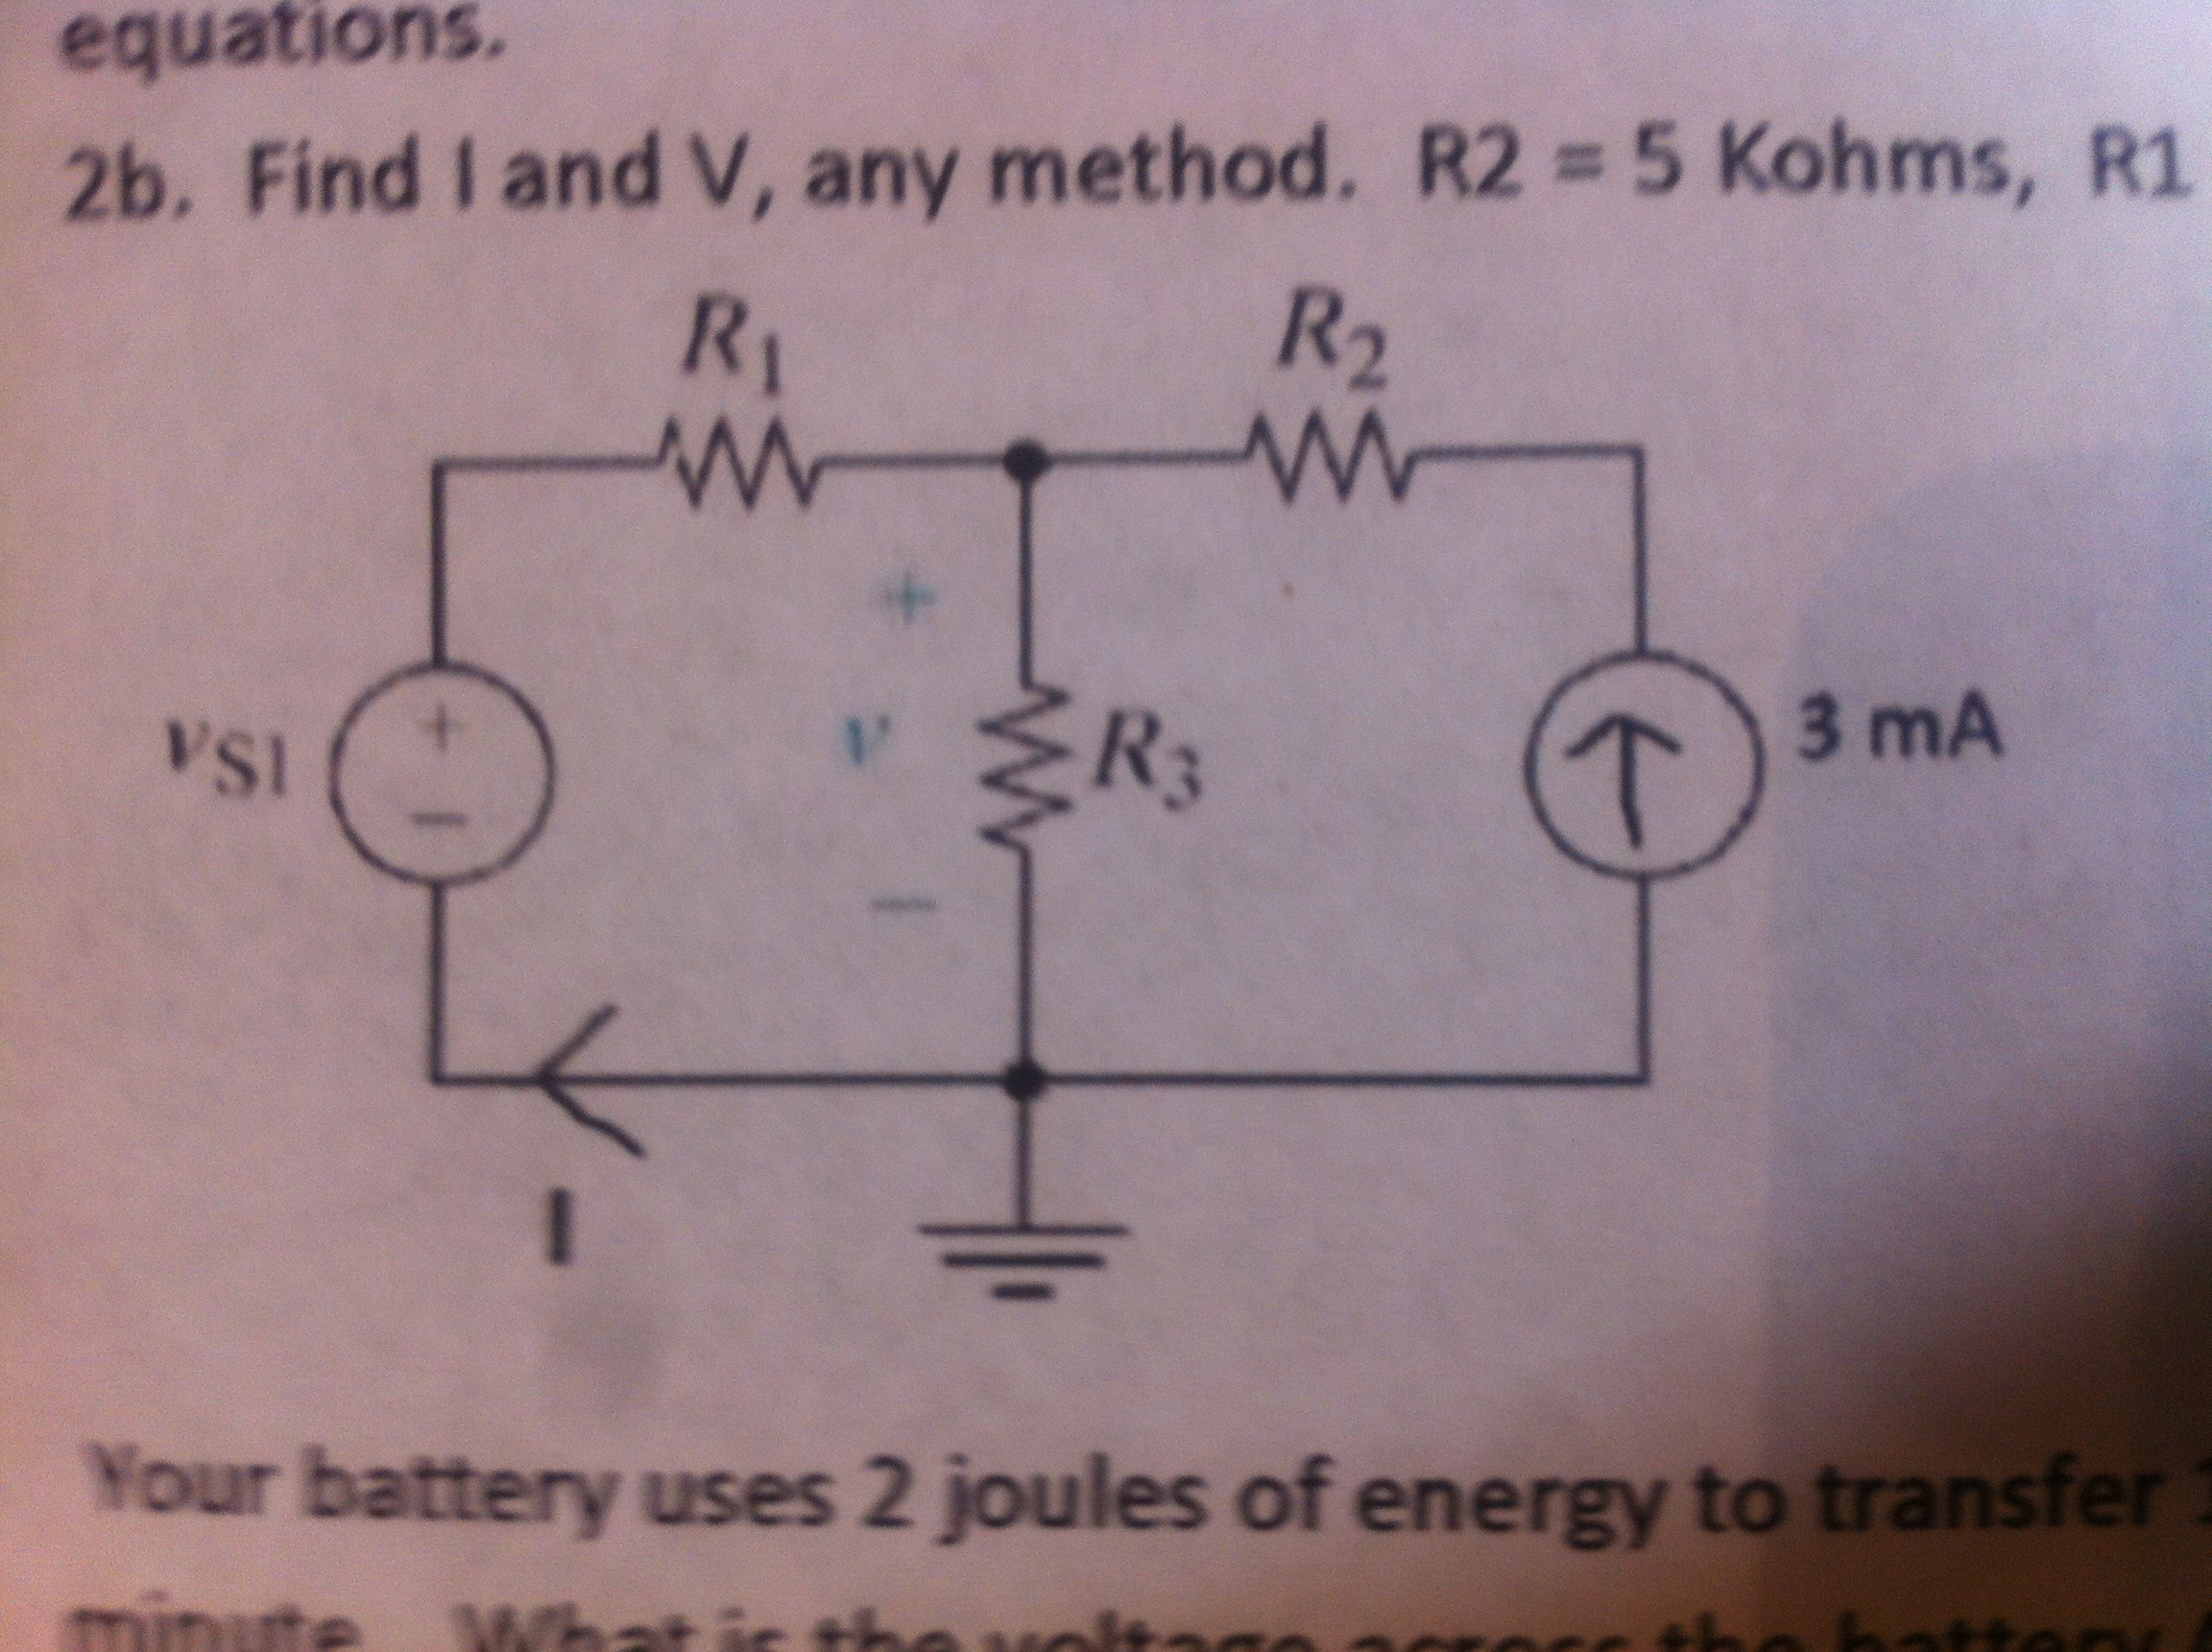 Find I and V, any method. R2 = 5 Kohms, R1 Your b